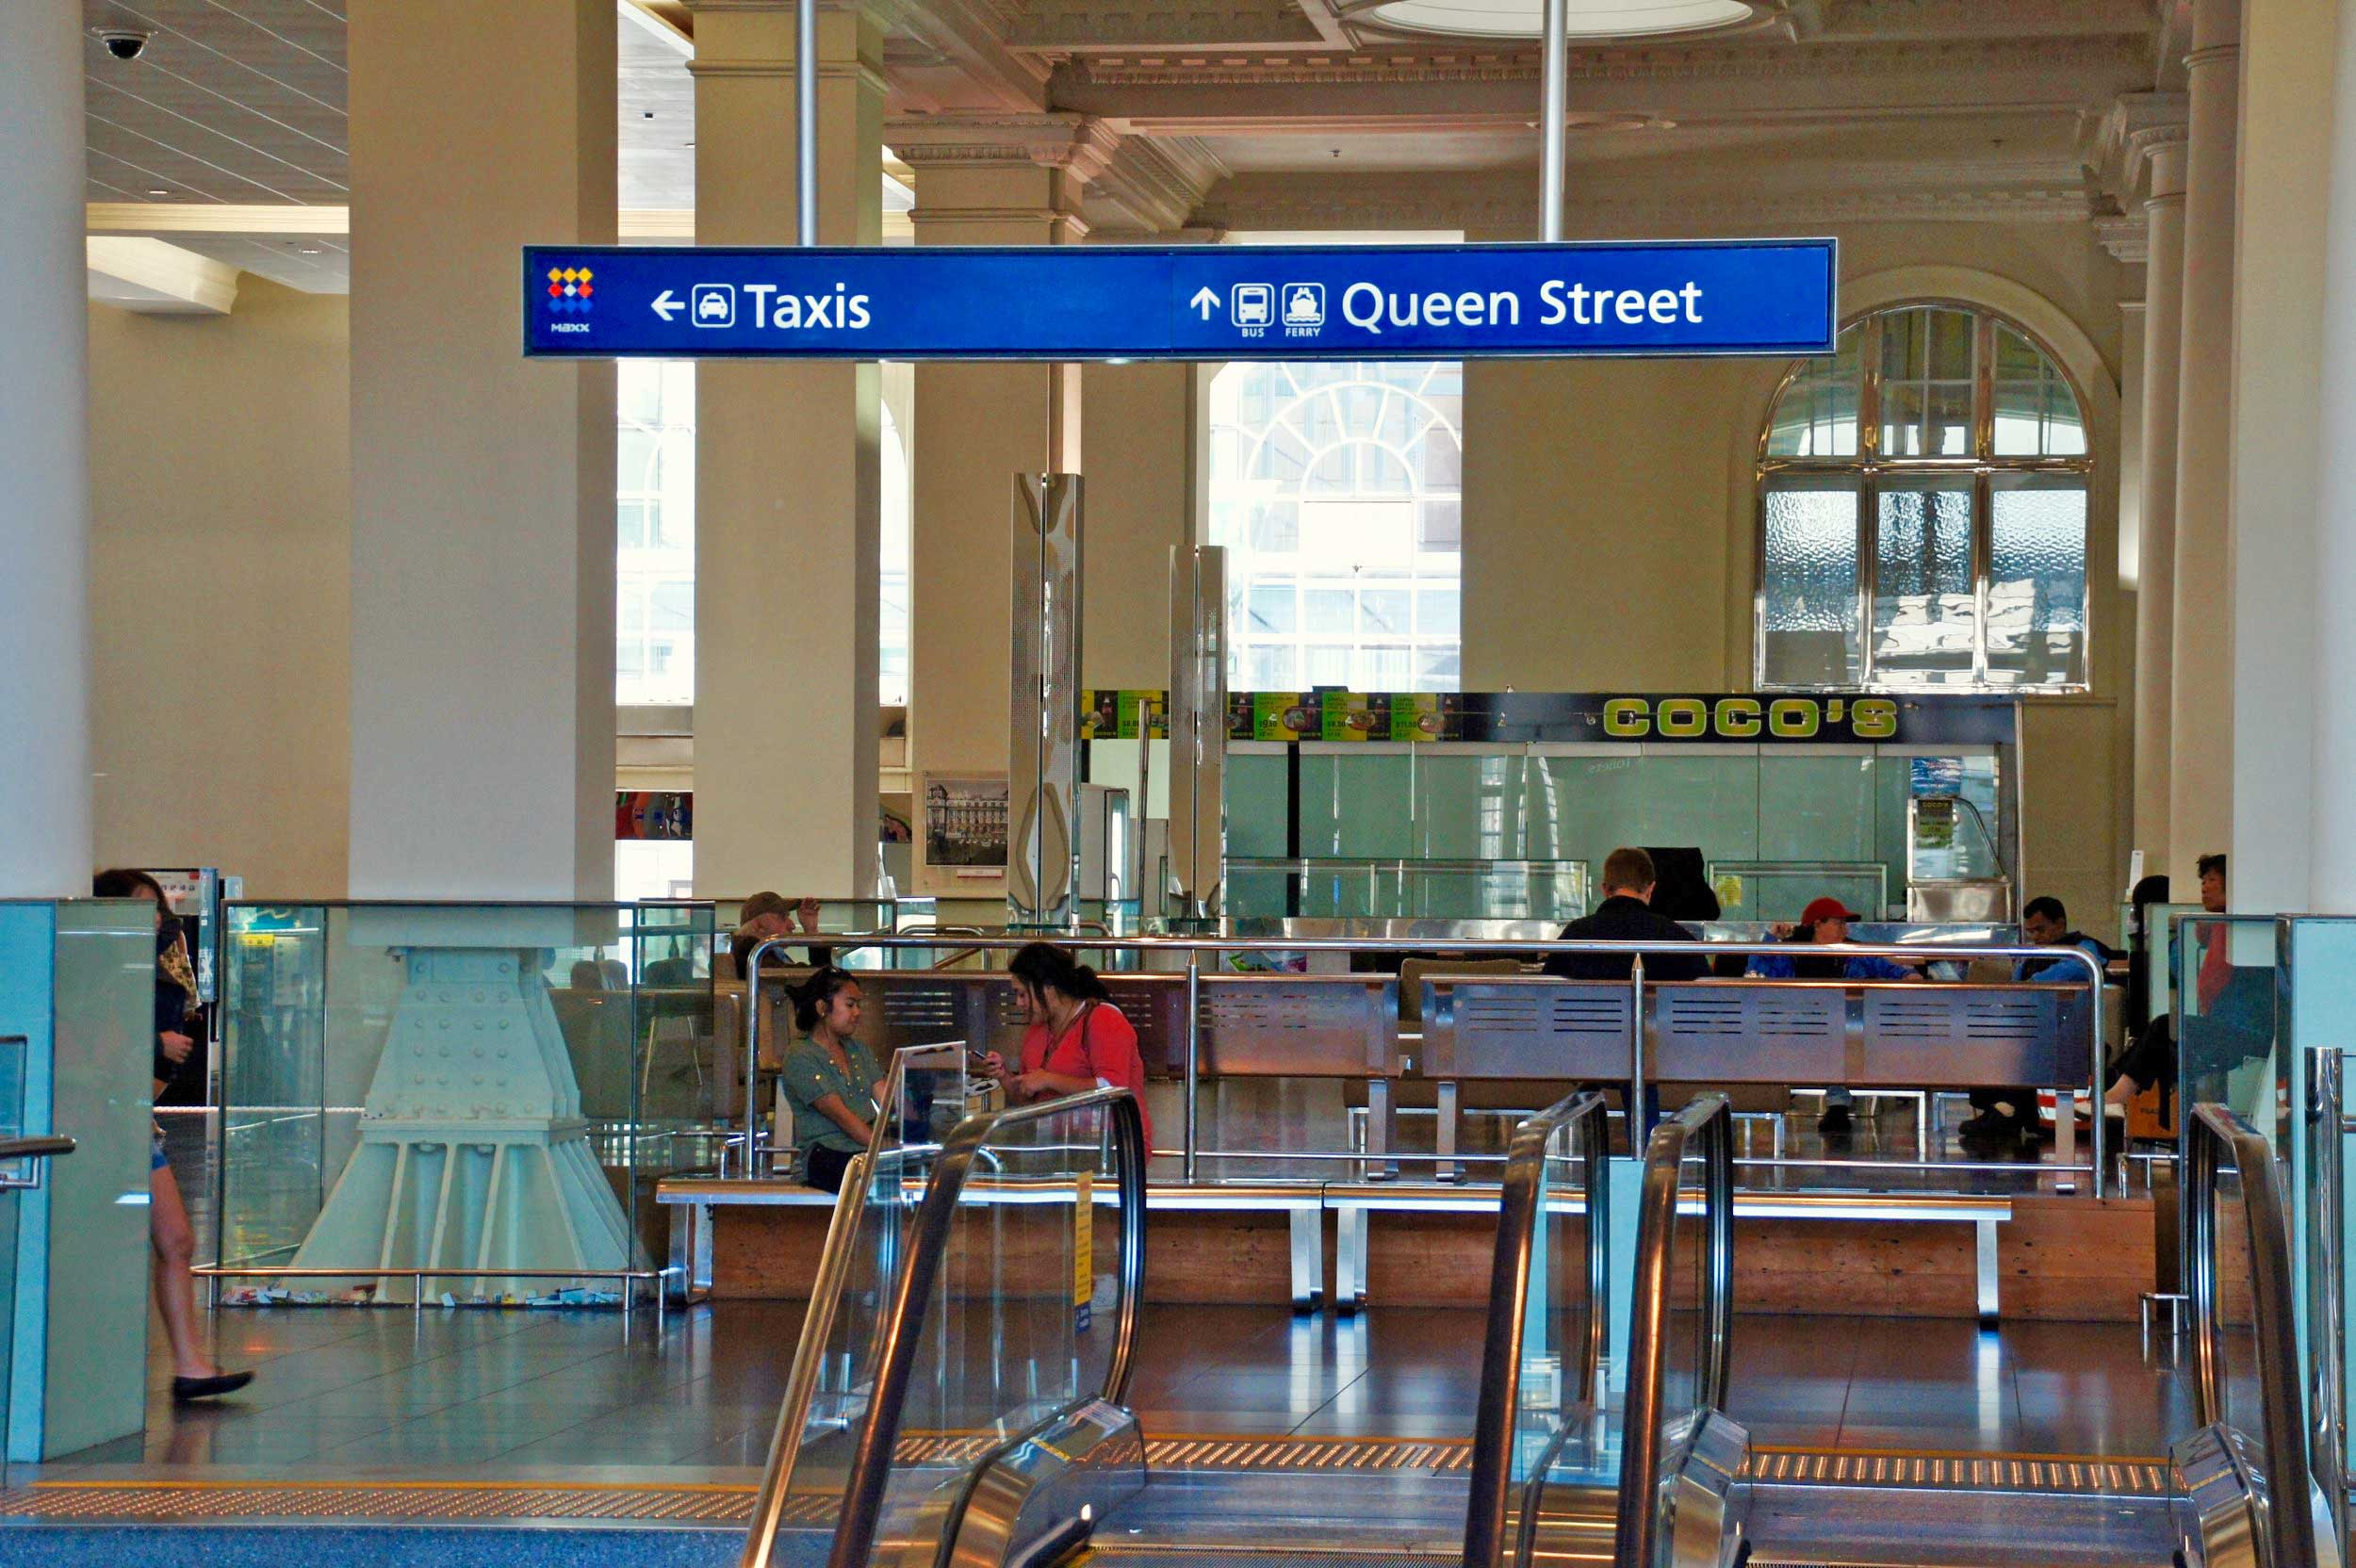 Britomart_train_station_interior_1.jpeg